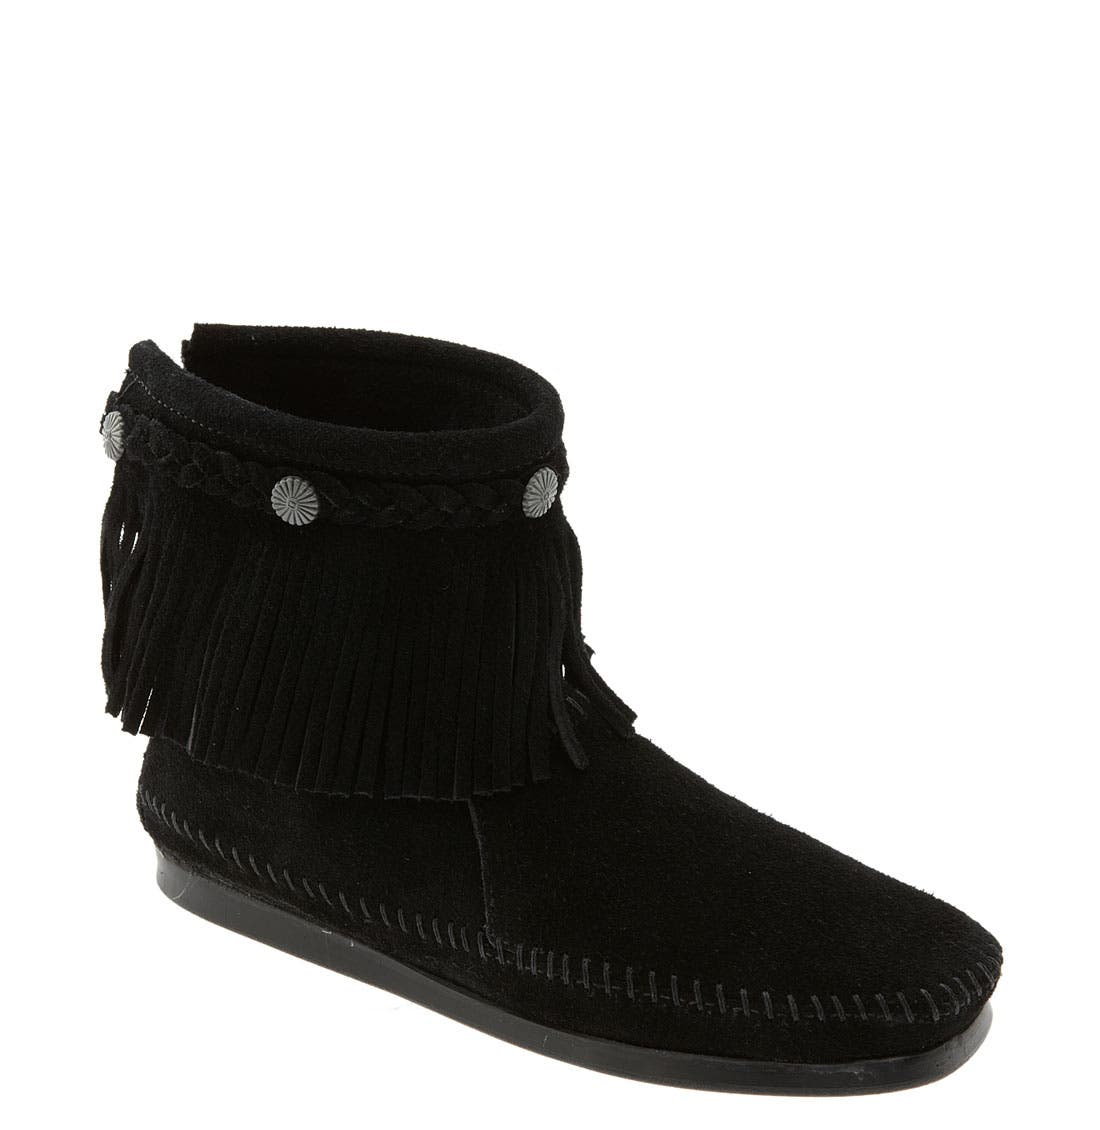 MINNETONKA, Fringed Moccasin Bootie, Main thumbnail 1, color, BLACK